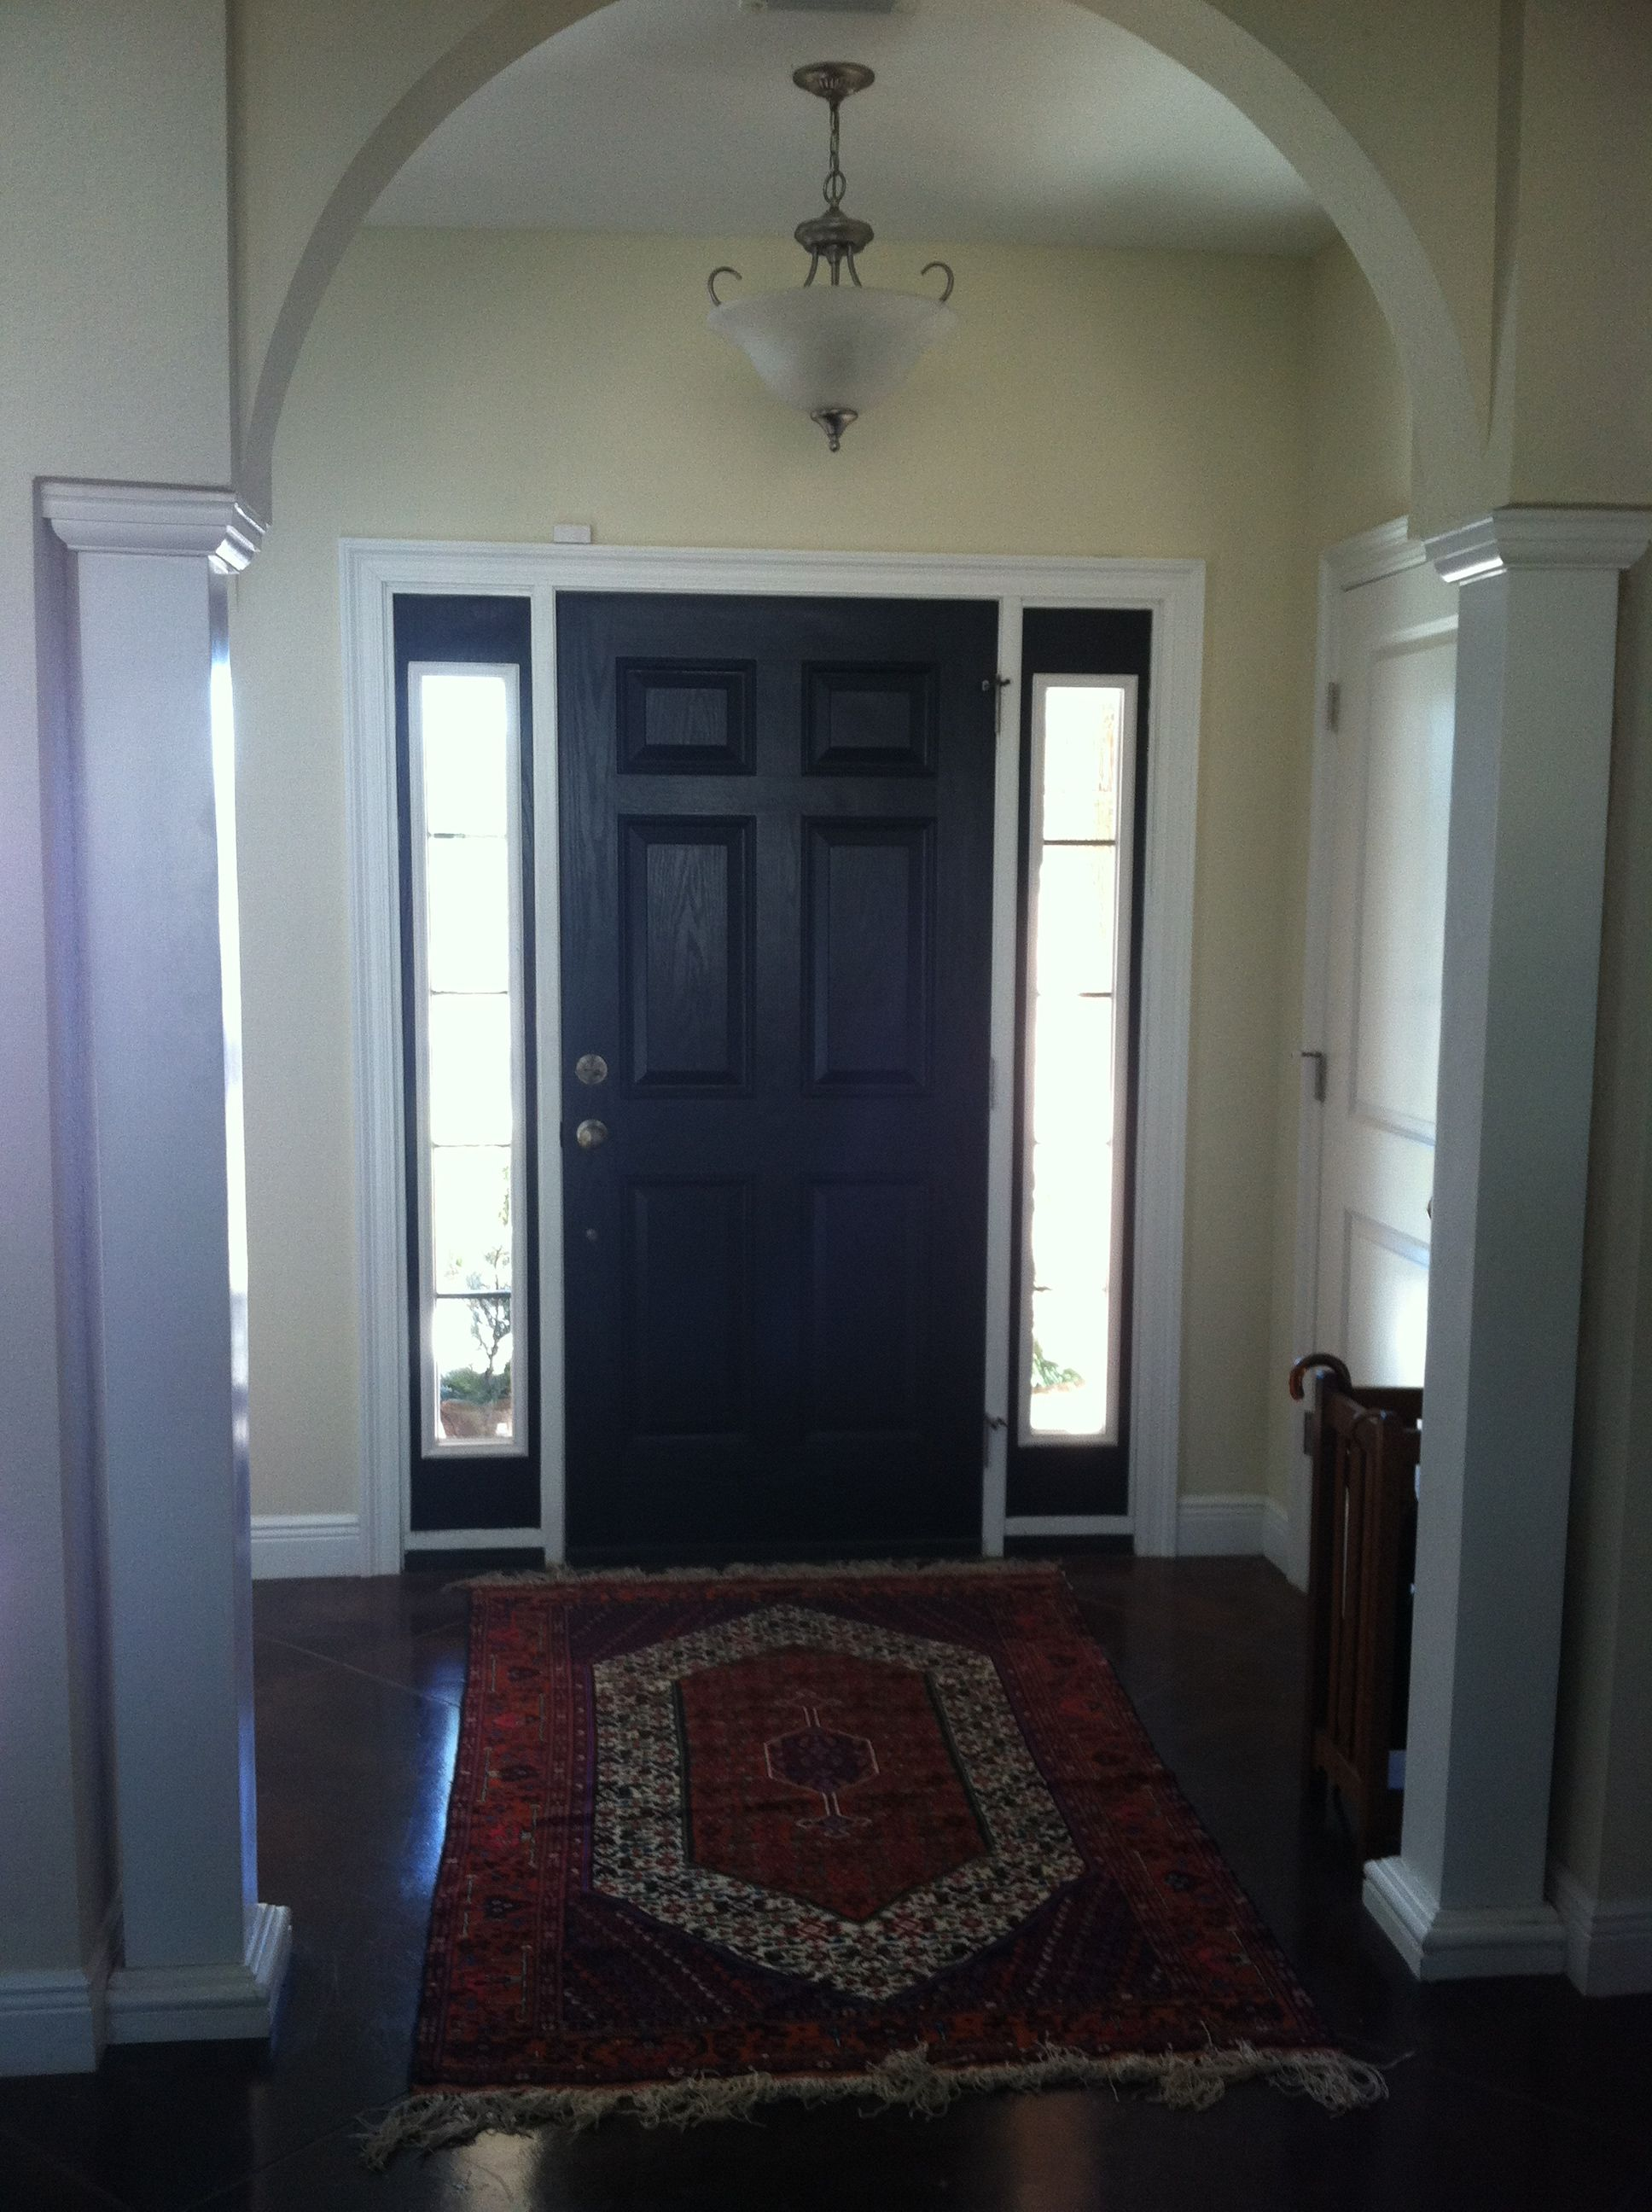 Repainted Black Front Door Interior Paint Adding Cl To Painting Entry Visit My Blog Askfordirection